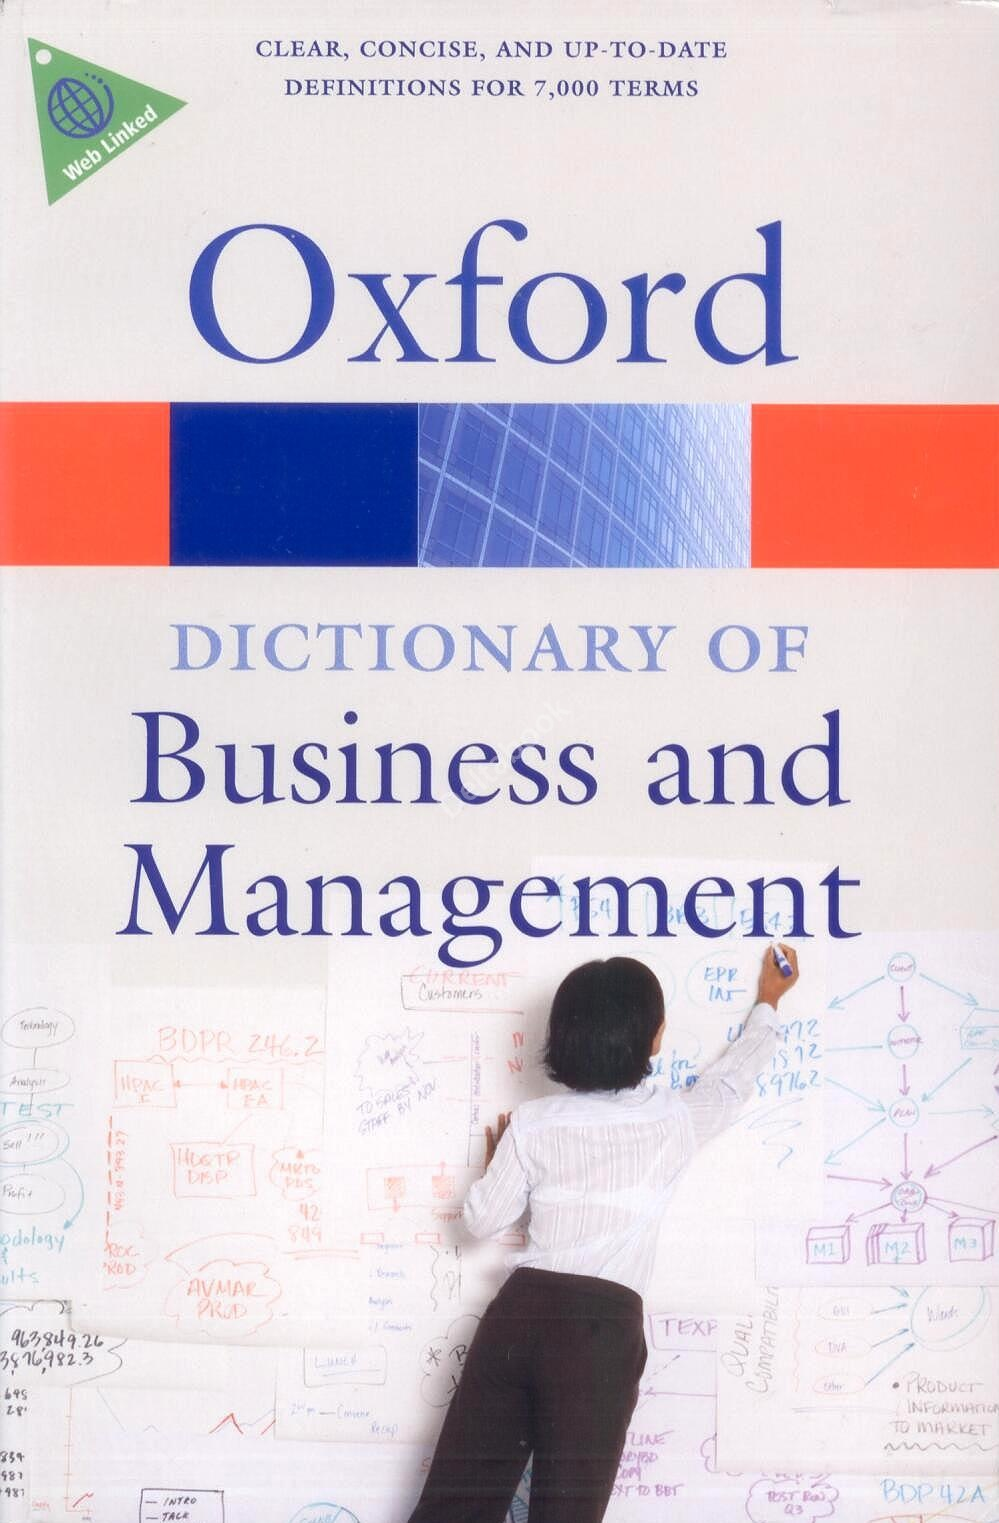 Oxford Dictionary of Business and Management (5th Edition)